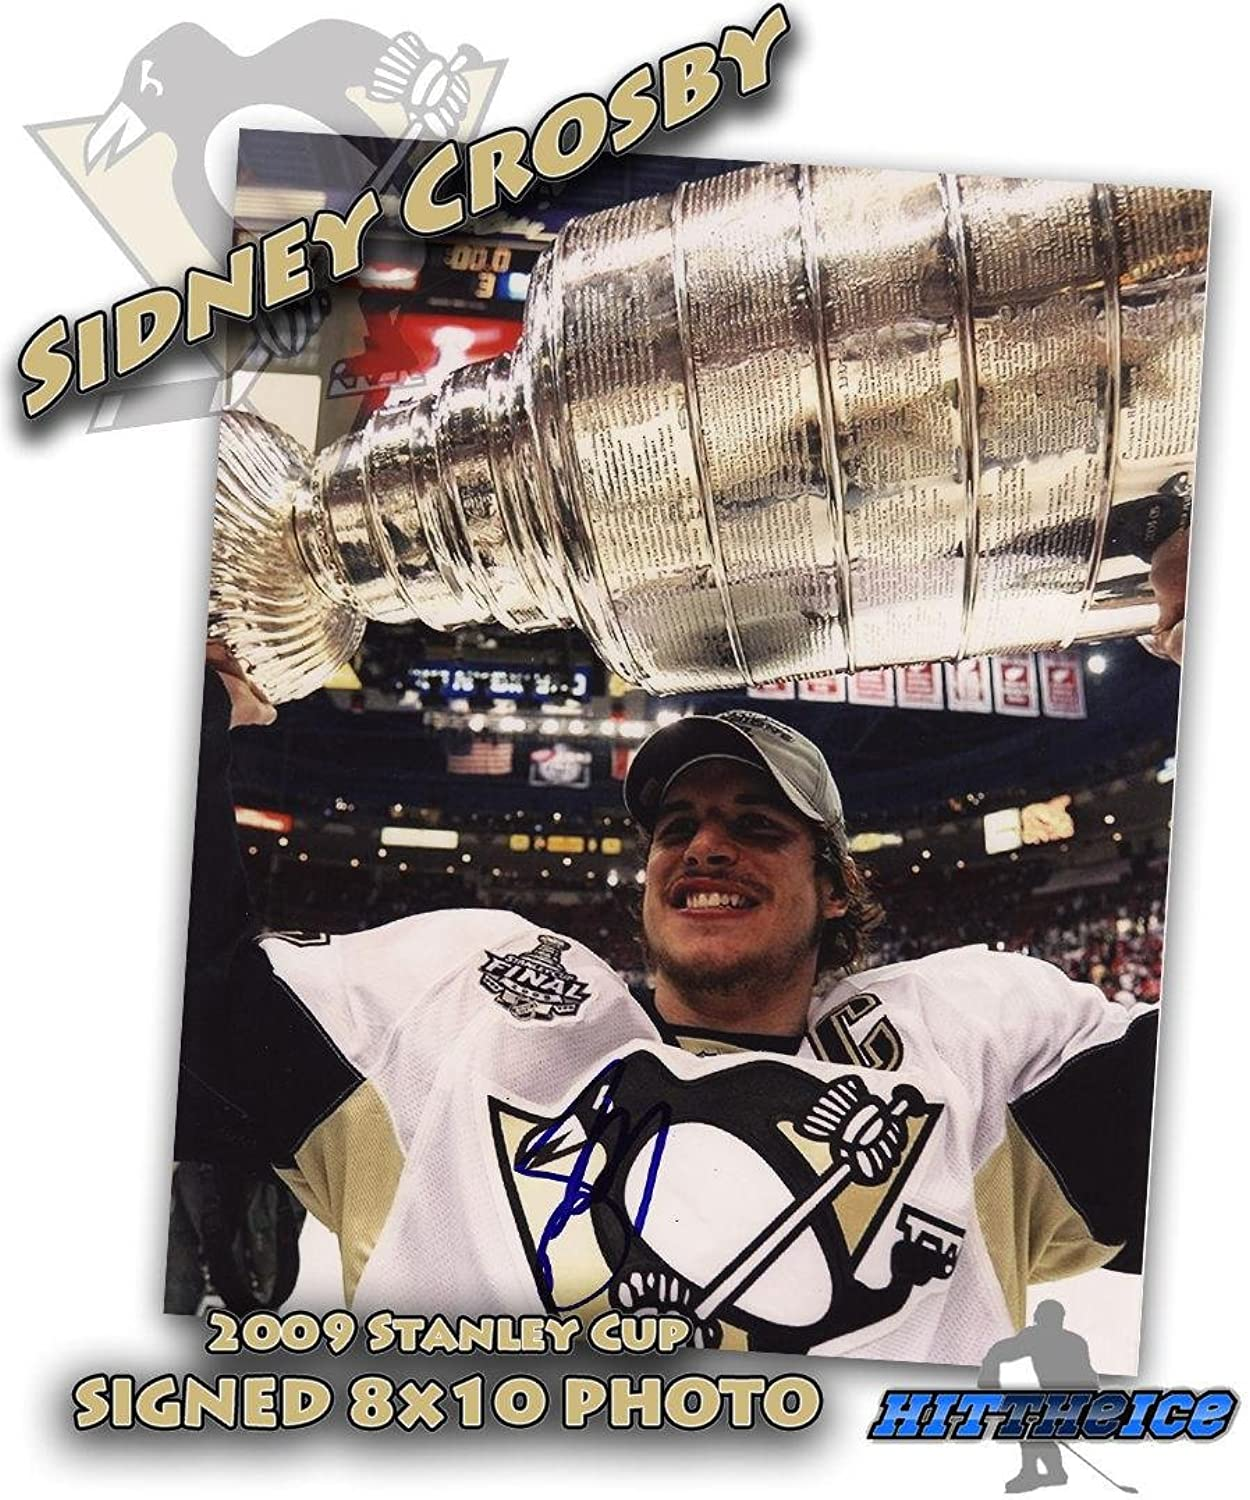 Sidney Crosby Autographed Photo  2009 Stanley Cup 8X10 w COA  Autographed NHL Photos